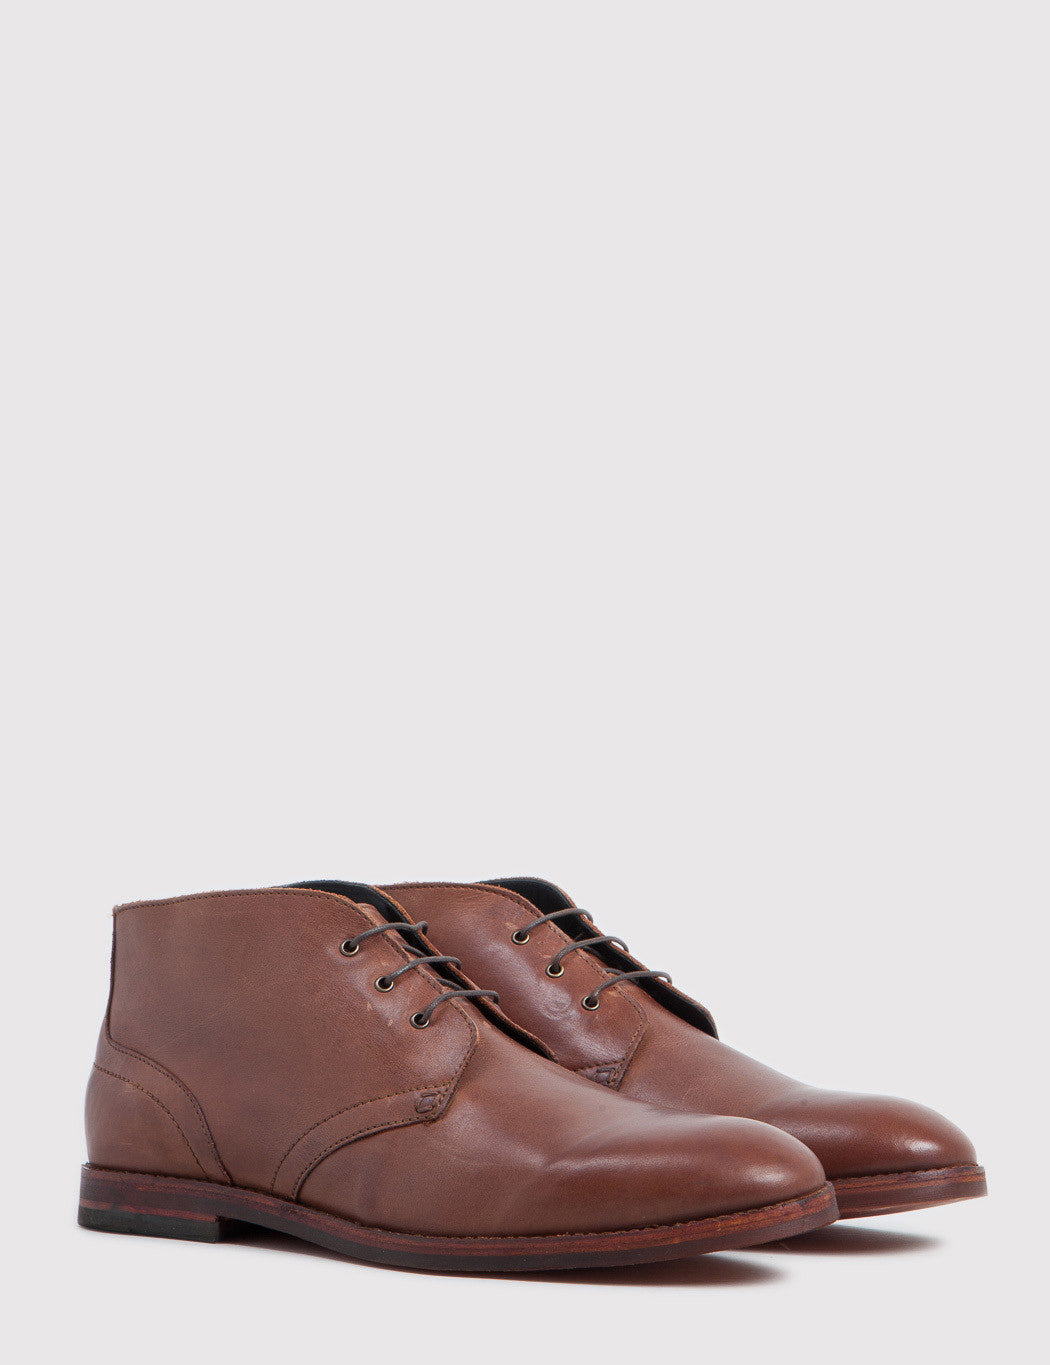 Hudson Houghton 2 Calf Leather Chukka Boots - Tan